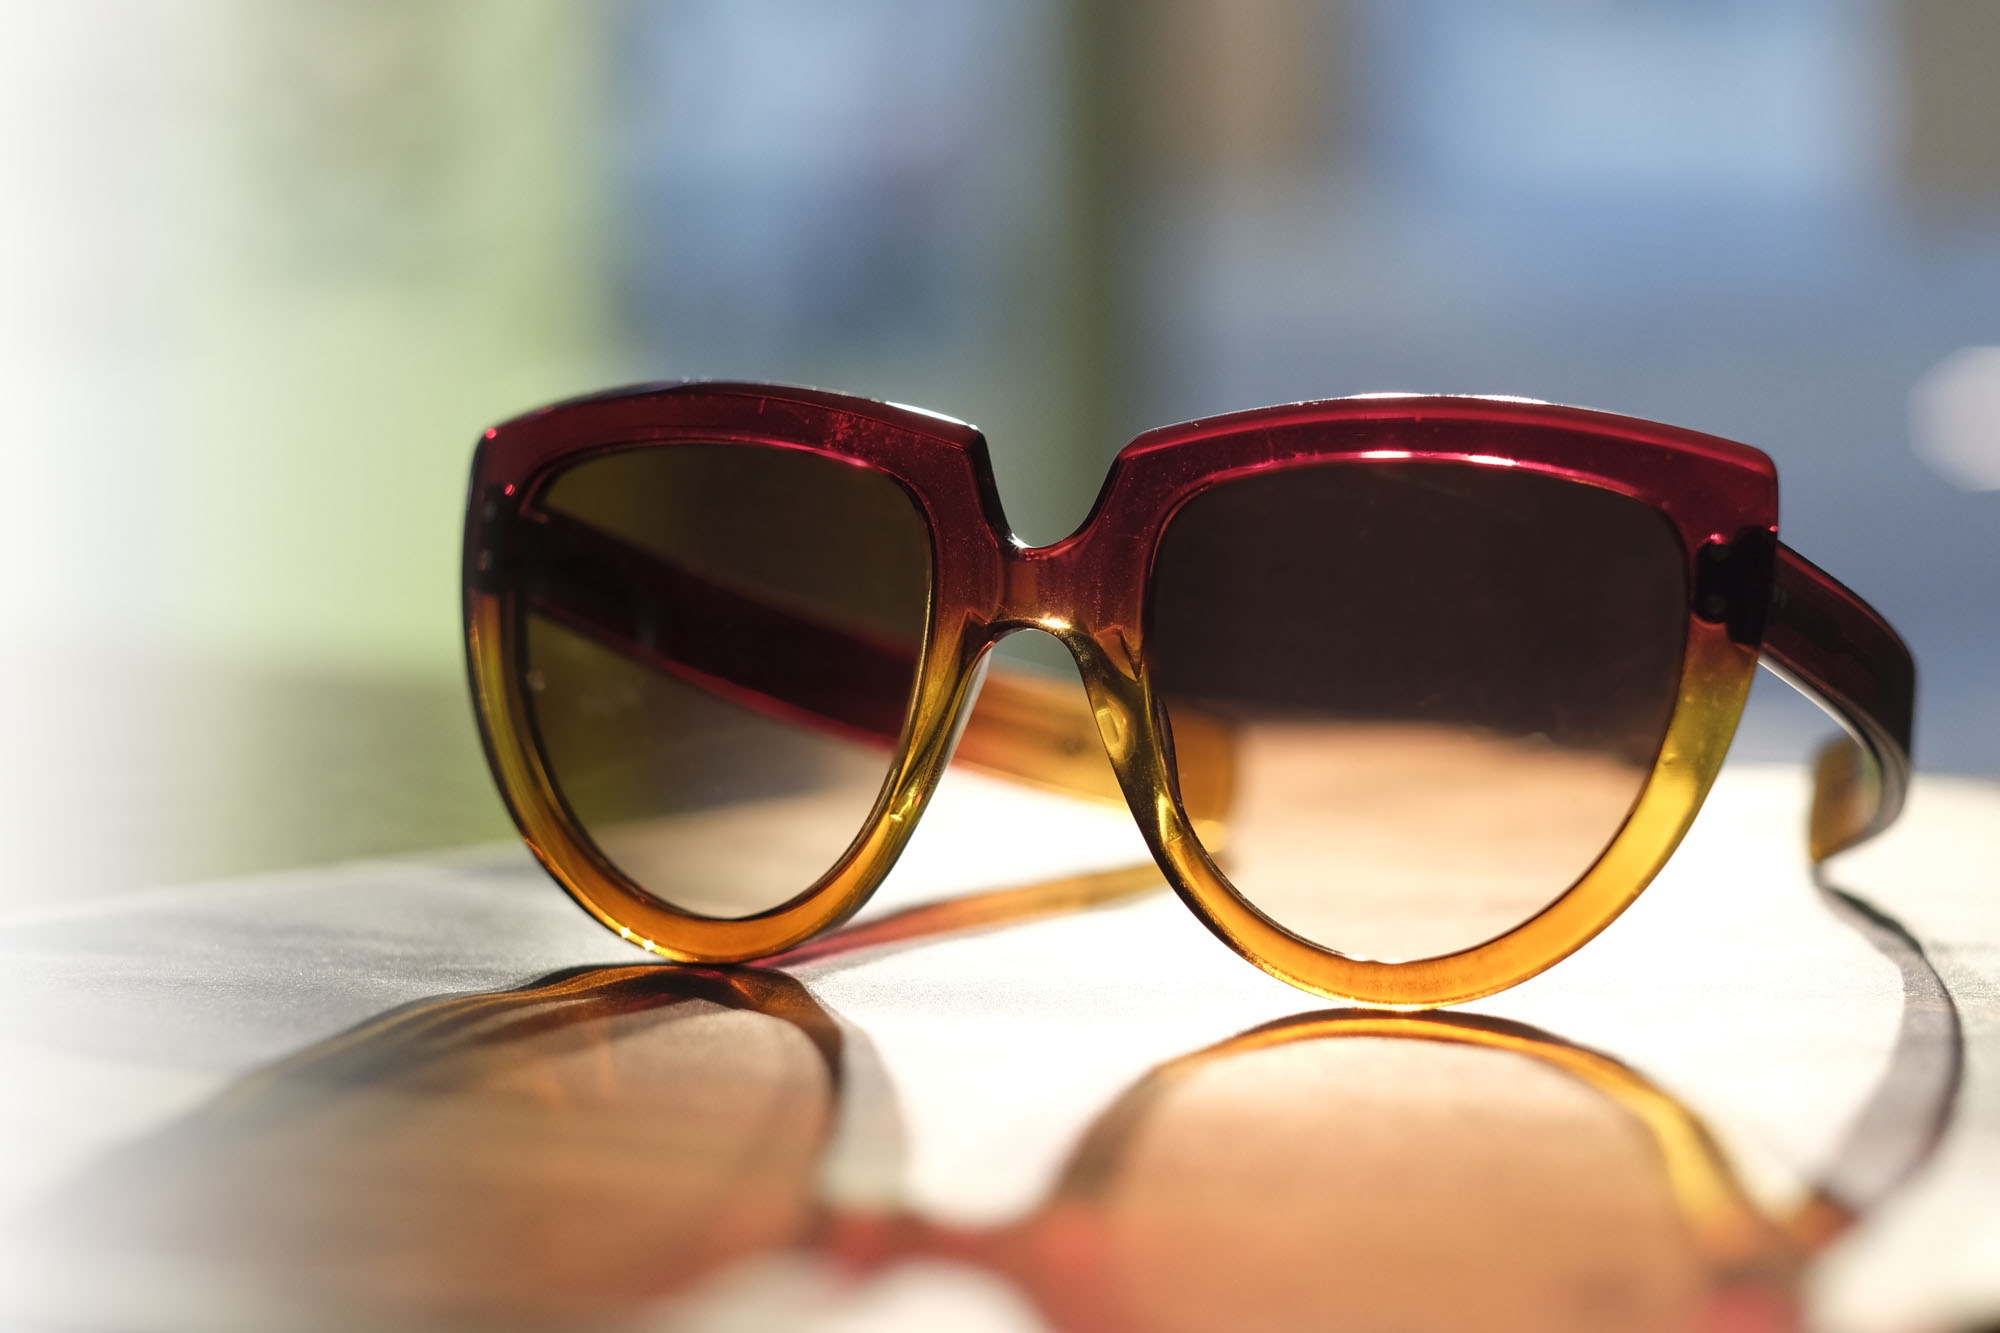 Schaufenster Nr. 047: Oliver Goldsmith